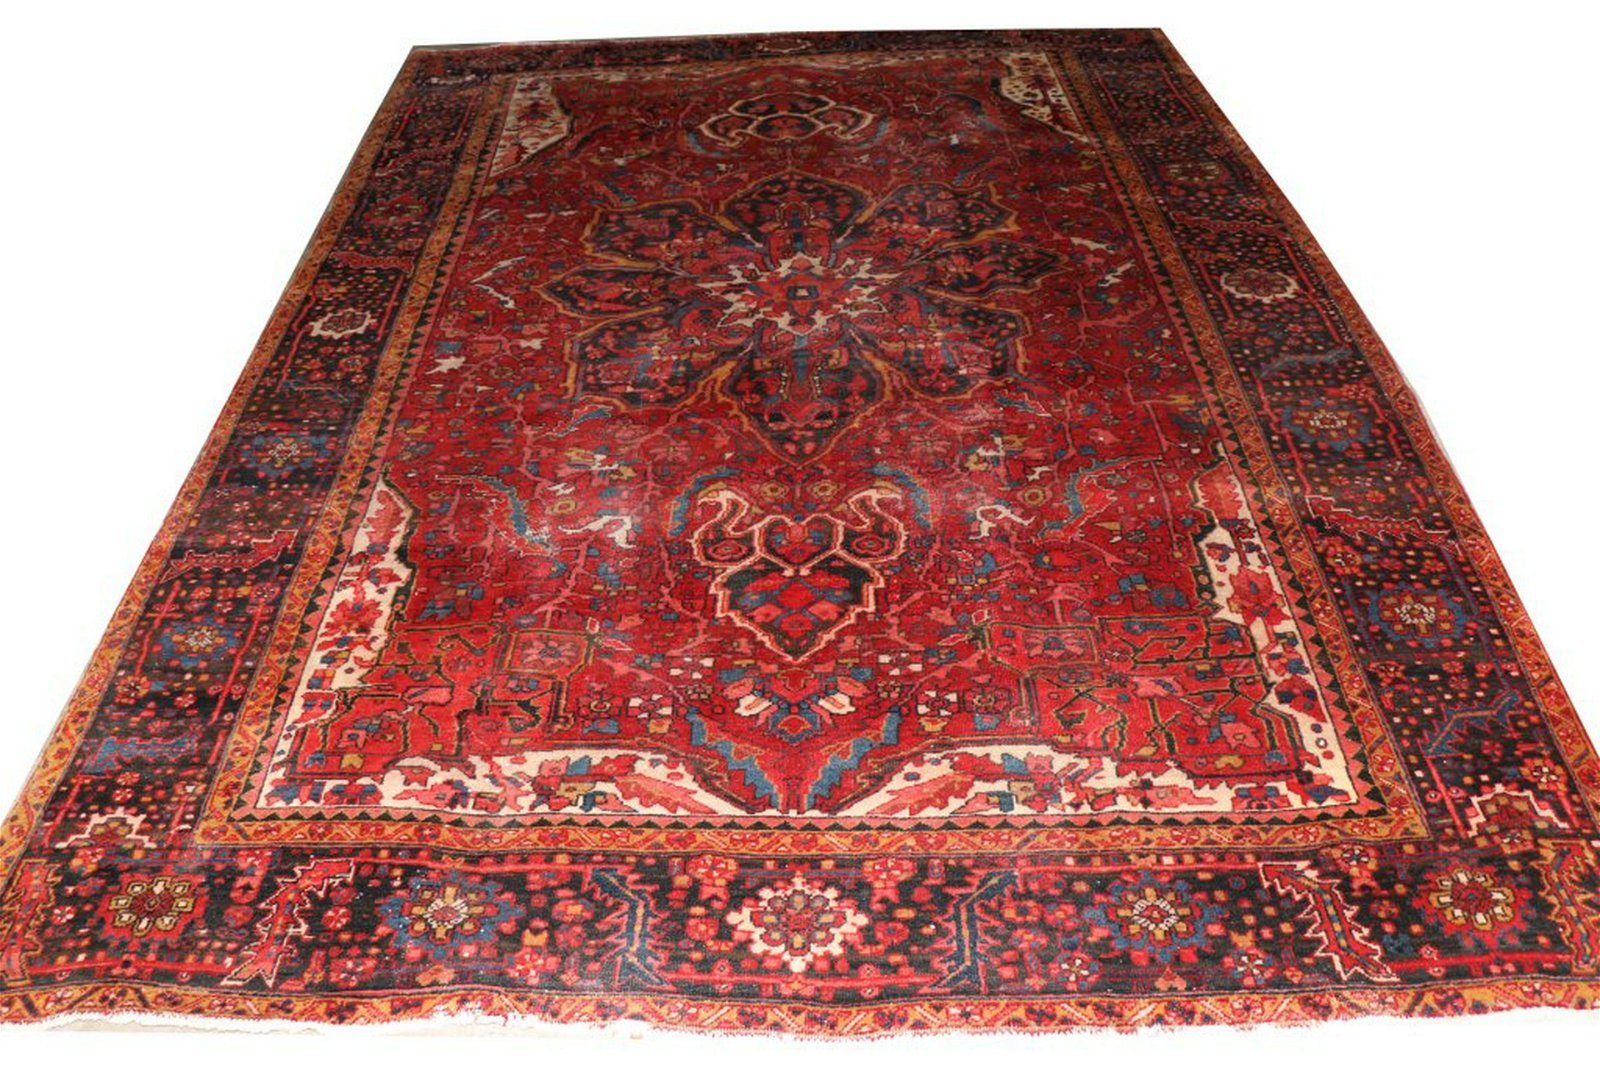 VINTAGE HAND KNOTTED PERSIAN HERIZ RUG